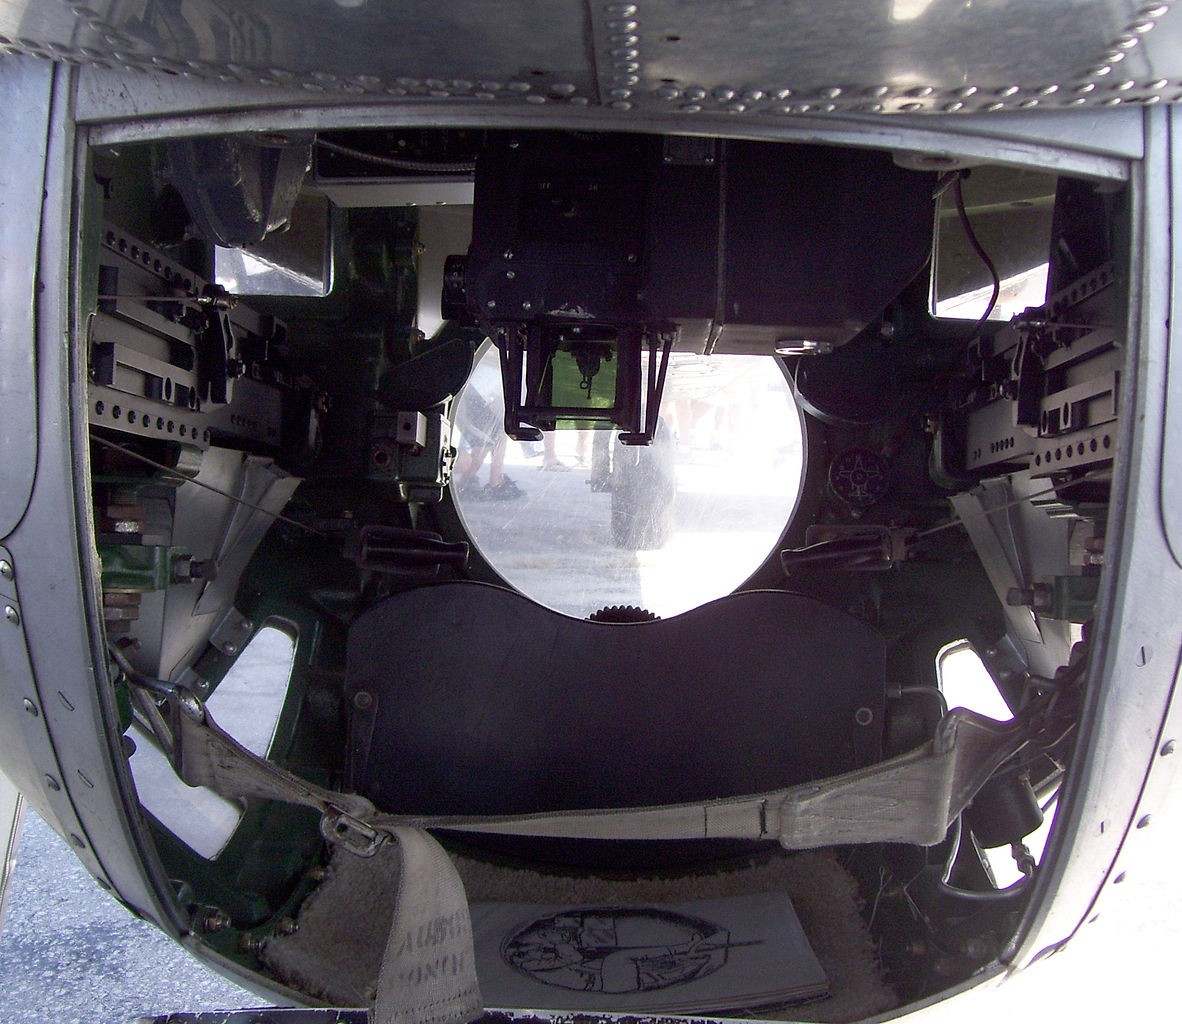 http://upload.wikimedia.org/wikipedia/commons/thumb/1/12/Ball_turret_inside_B-17.jpg/1182px-Ball_turret_inside_B-17.jpg